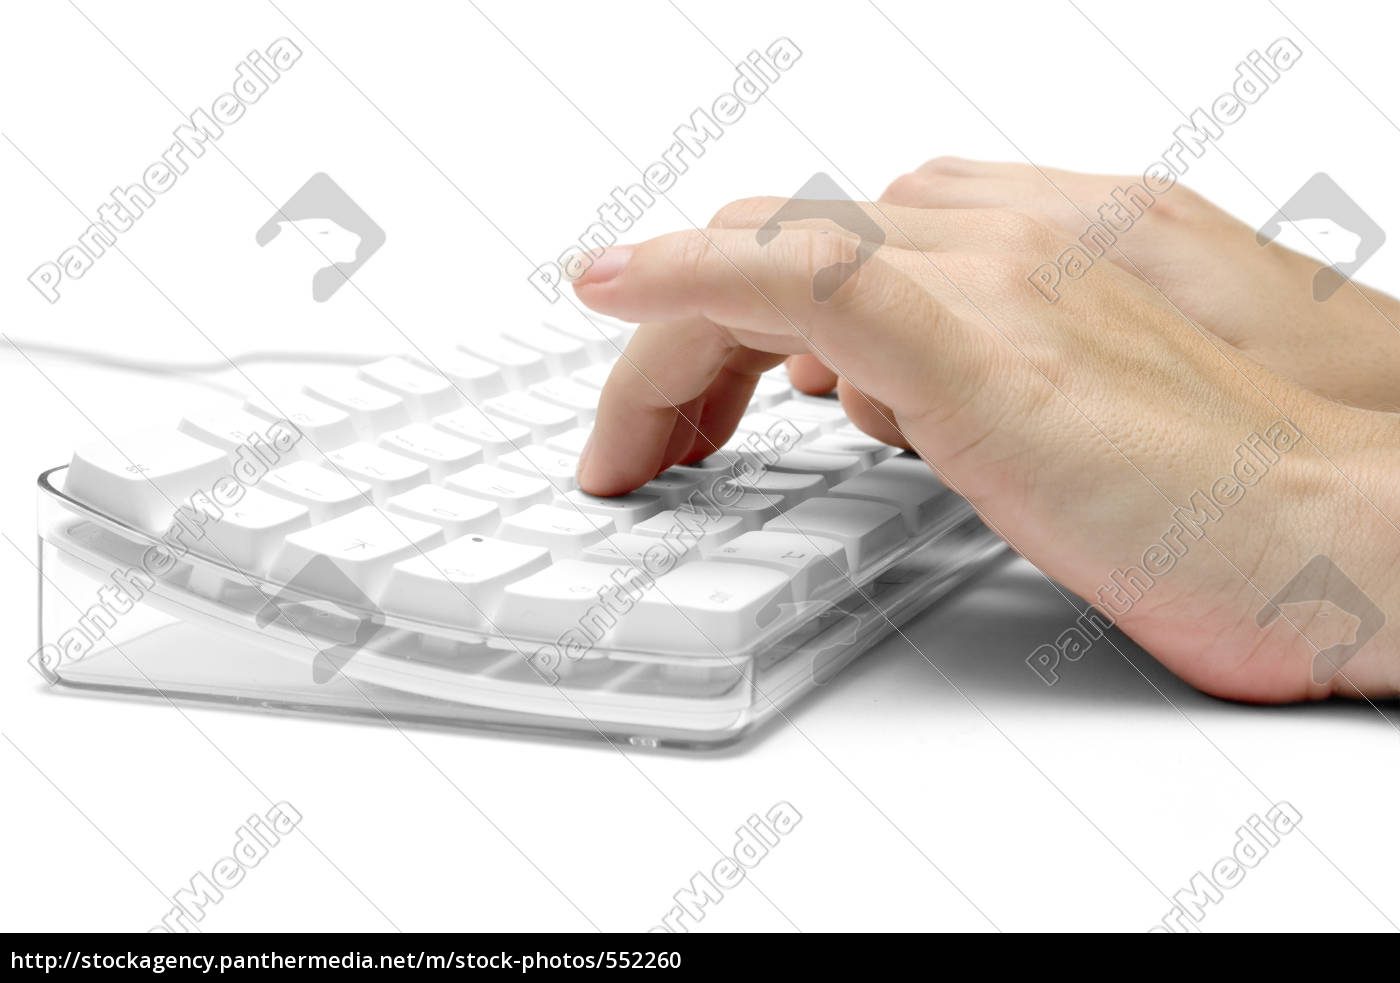 hands, on, white, computer, keyboard - 552260